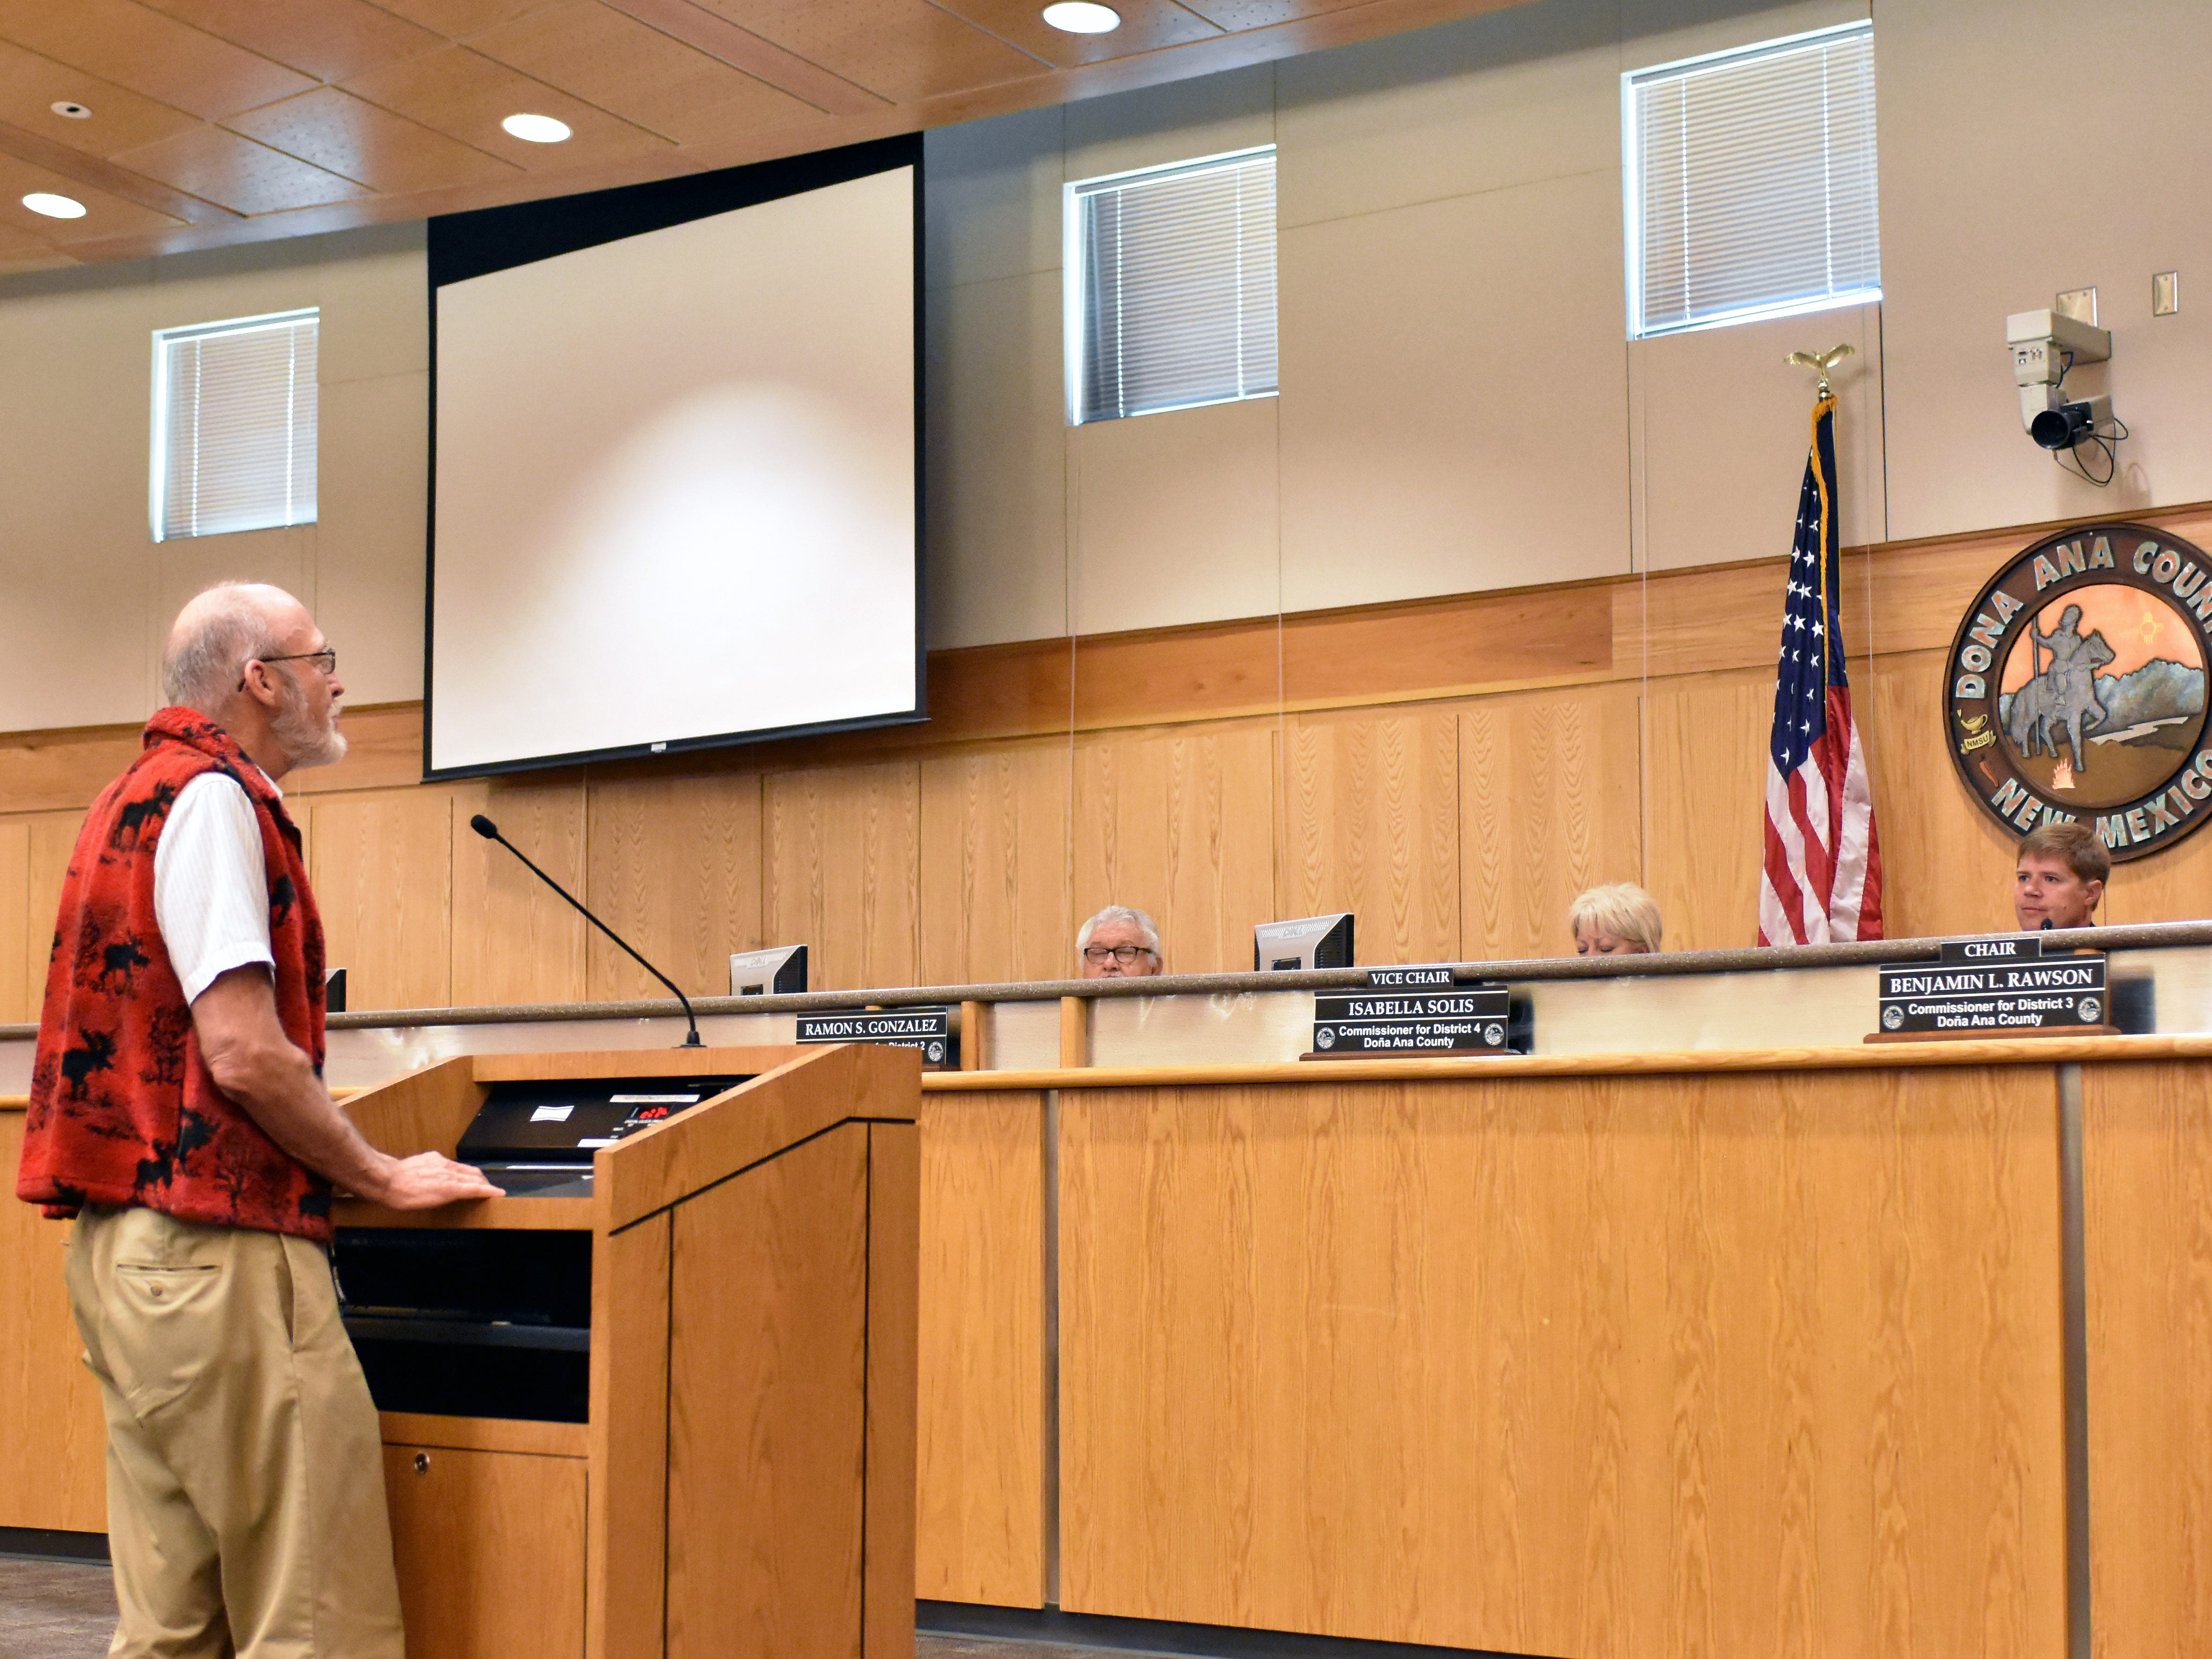 Doña Ana County resident Allen Downs addresses the county commission during a special meeting Tuesday, Sept. 4, 2018 at the Doña Ana County Government Center, 845 N. Motel Blvd. in Las Cruces. Downs spoke in favor of straight-party voting.